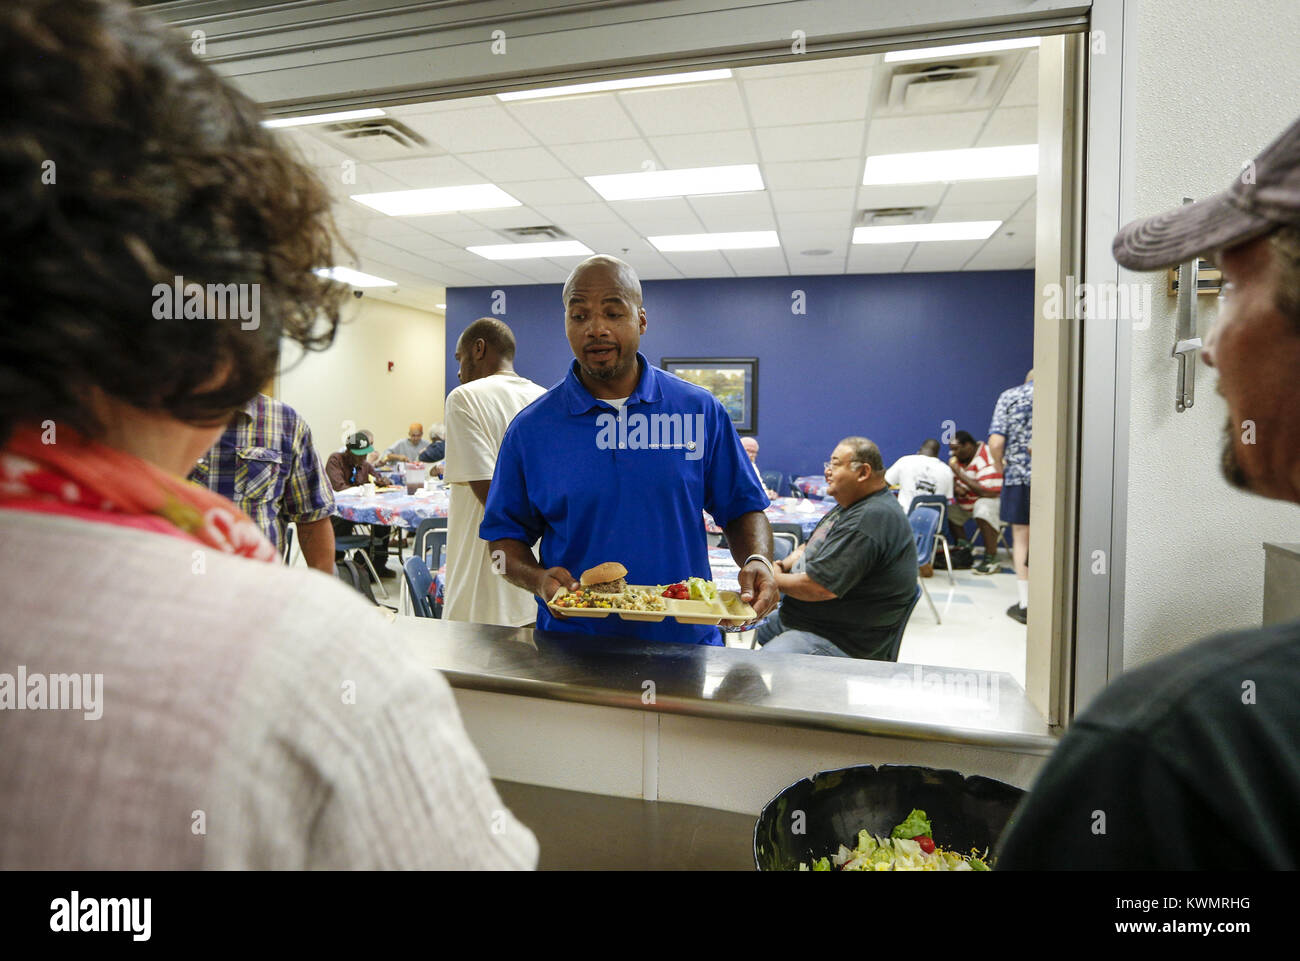 Davenport, Iowa, USA. 5th Aug, 2016. LeShawn Townsend walks down the food line to get his lunch in the cafeteria - Stock Image